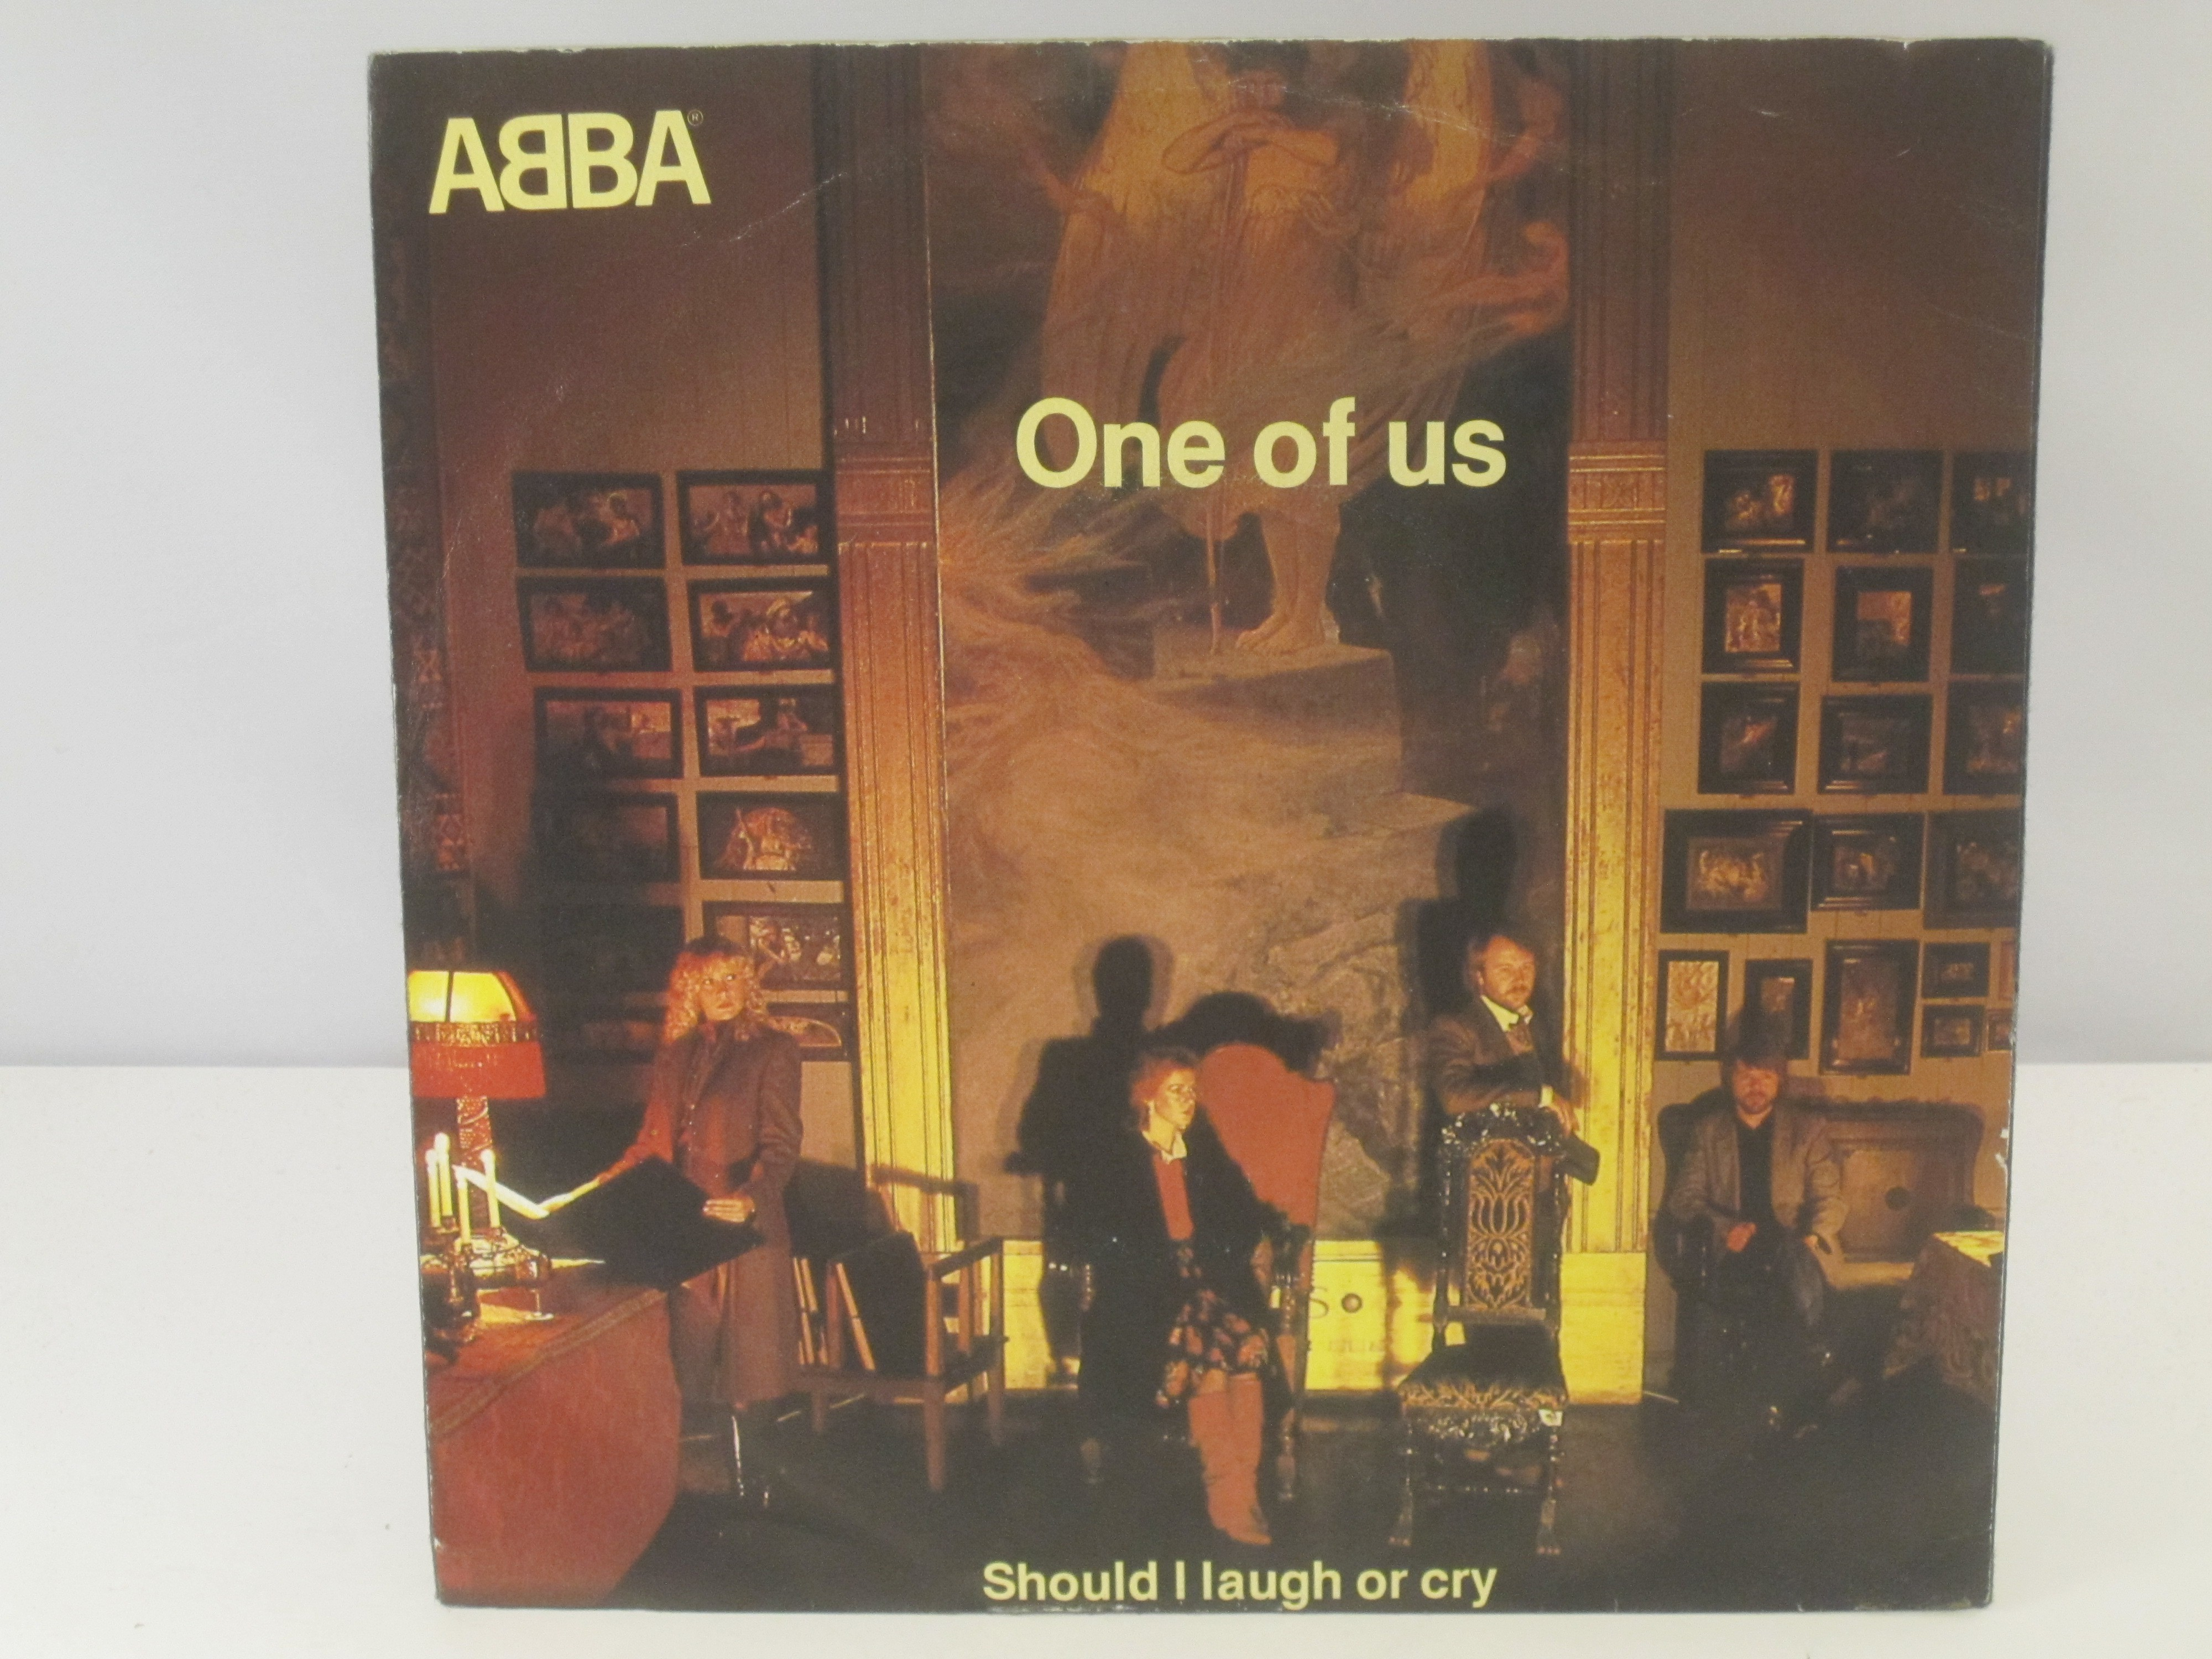 ABBA : One of us / Should I laugh or cry